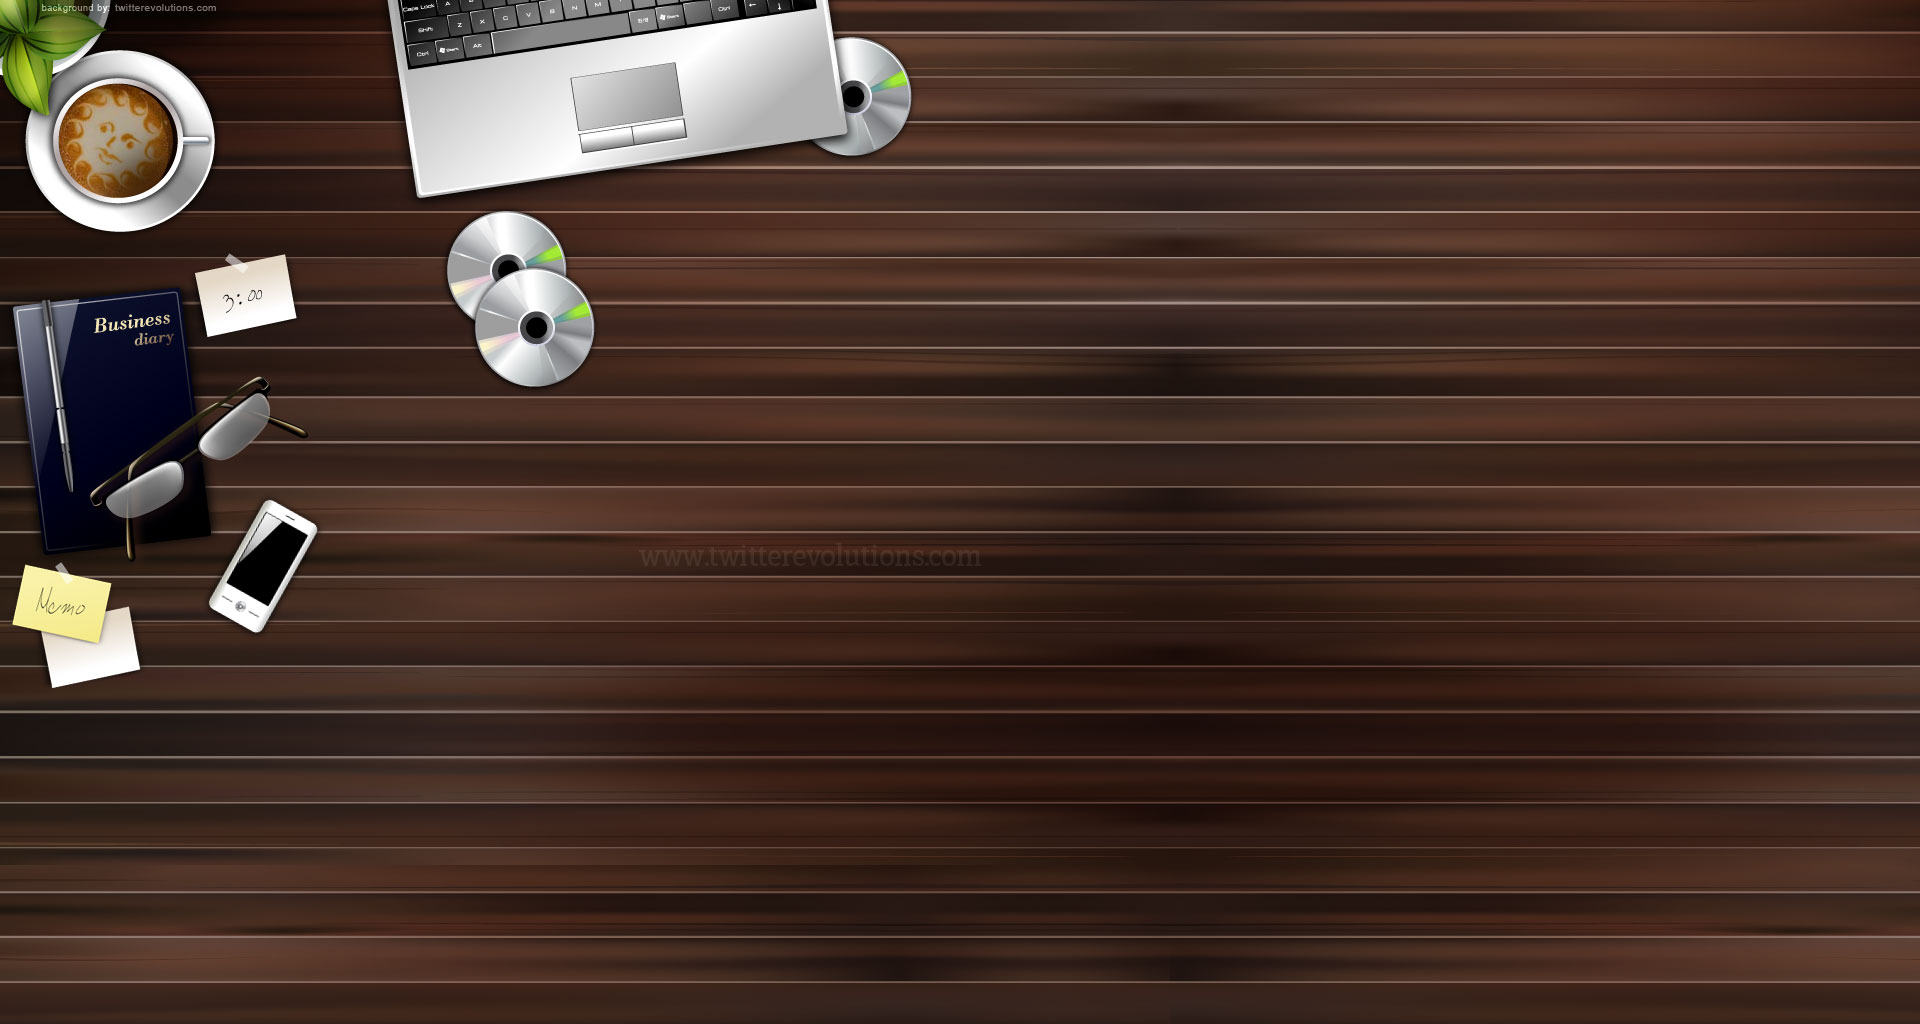 Free Download Office Background Wallpaper 1920x1024 For Your